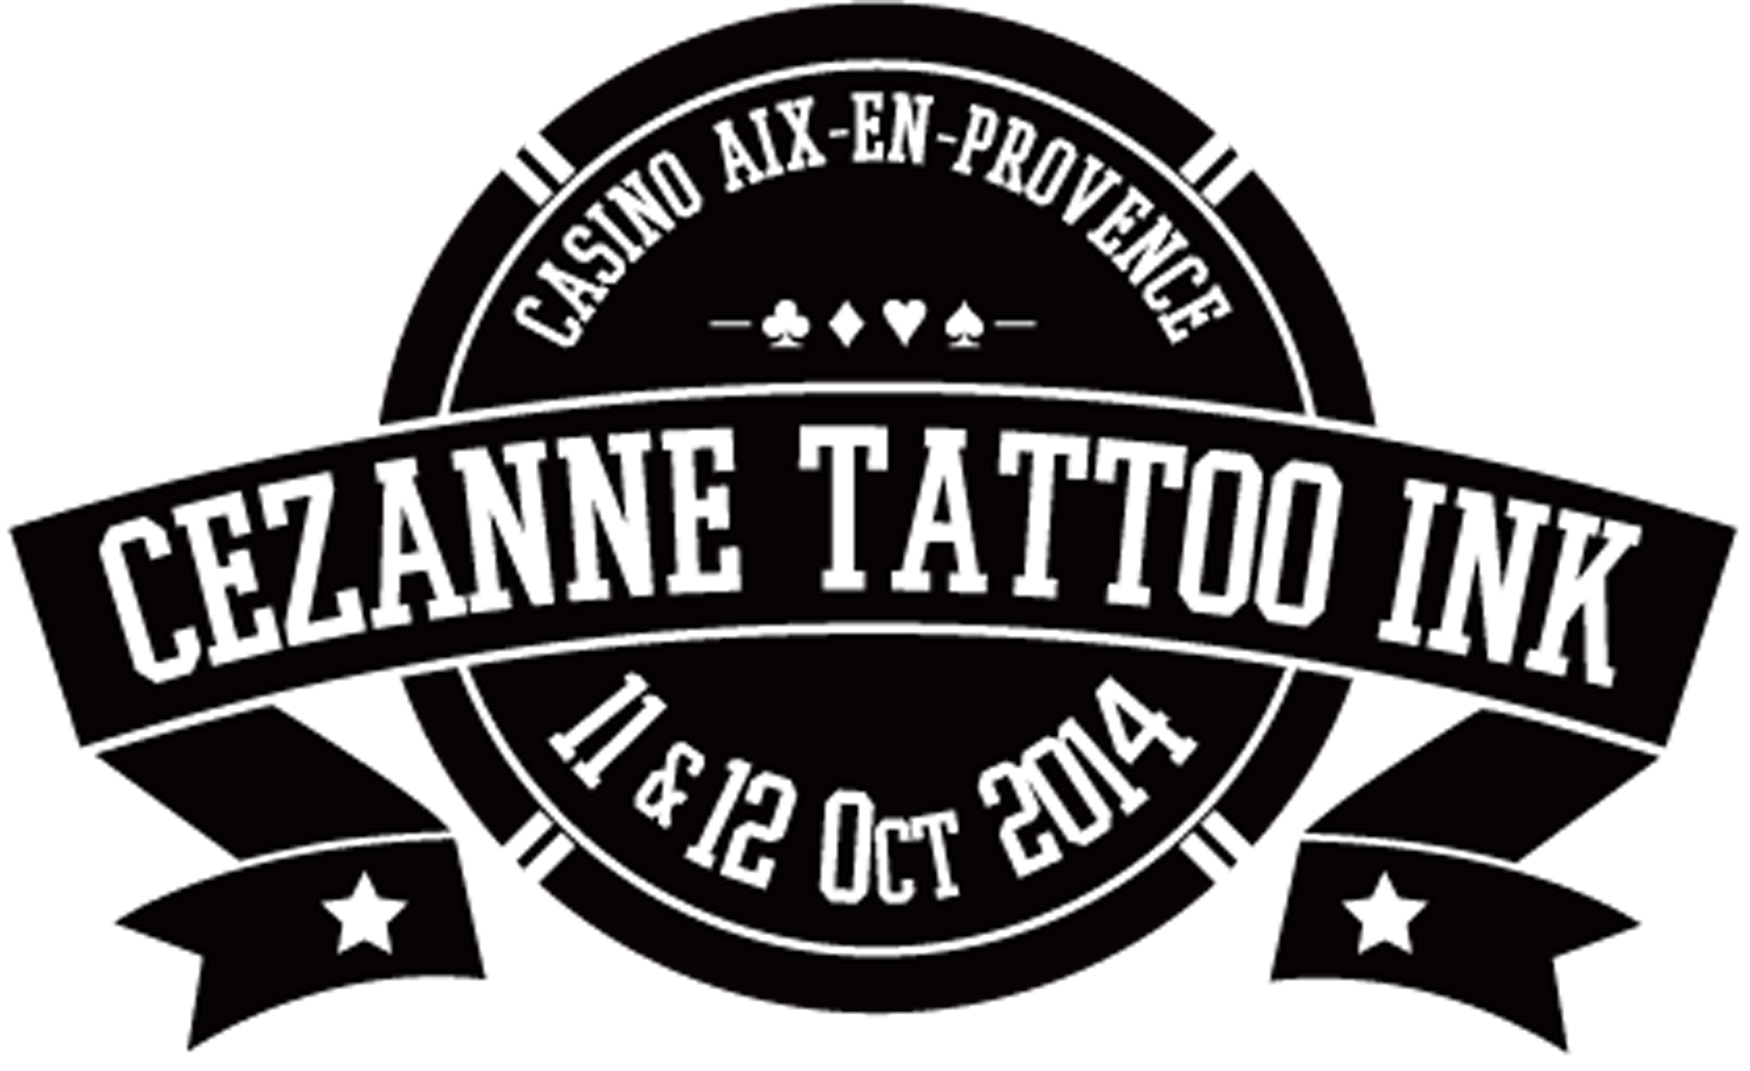 Cezanne-Tattoo-Ink-logoPNG